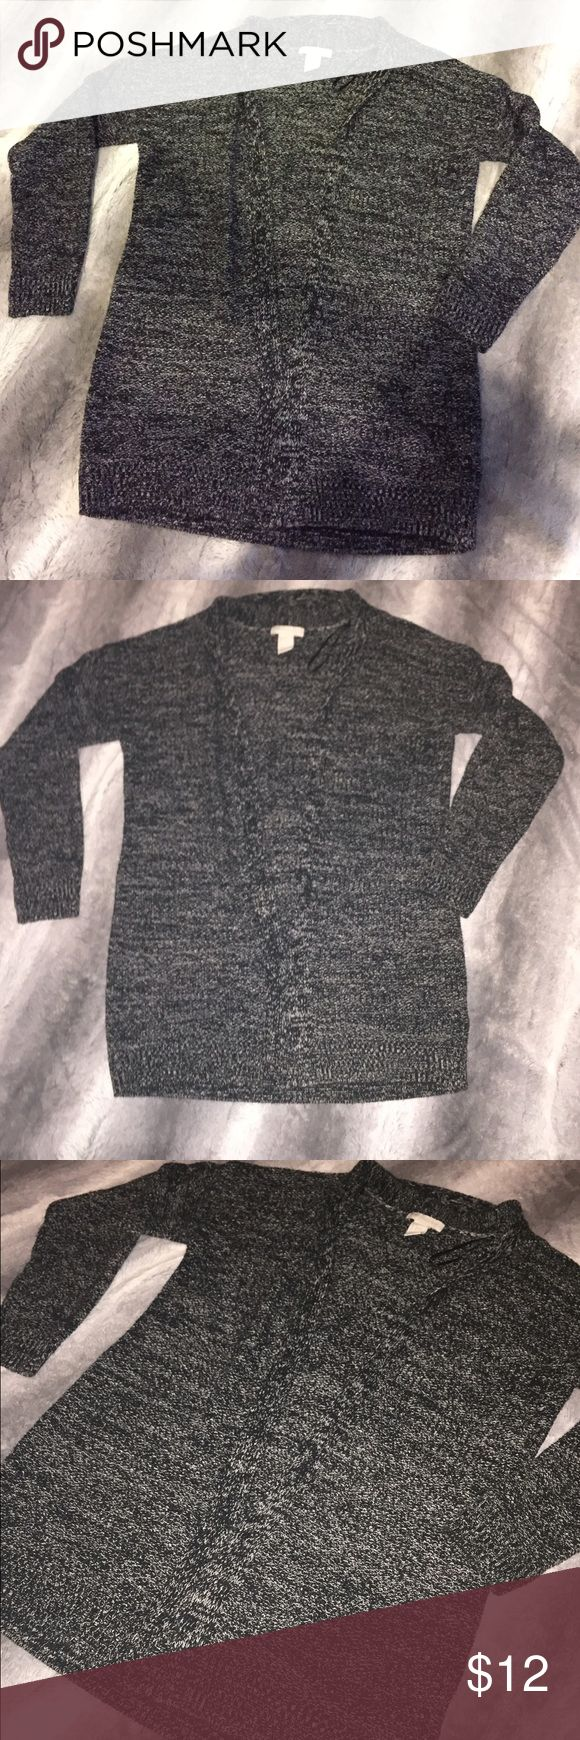 Cute cardigan Black and white cardigan H&M Sweaters Cardigans